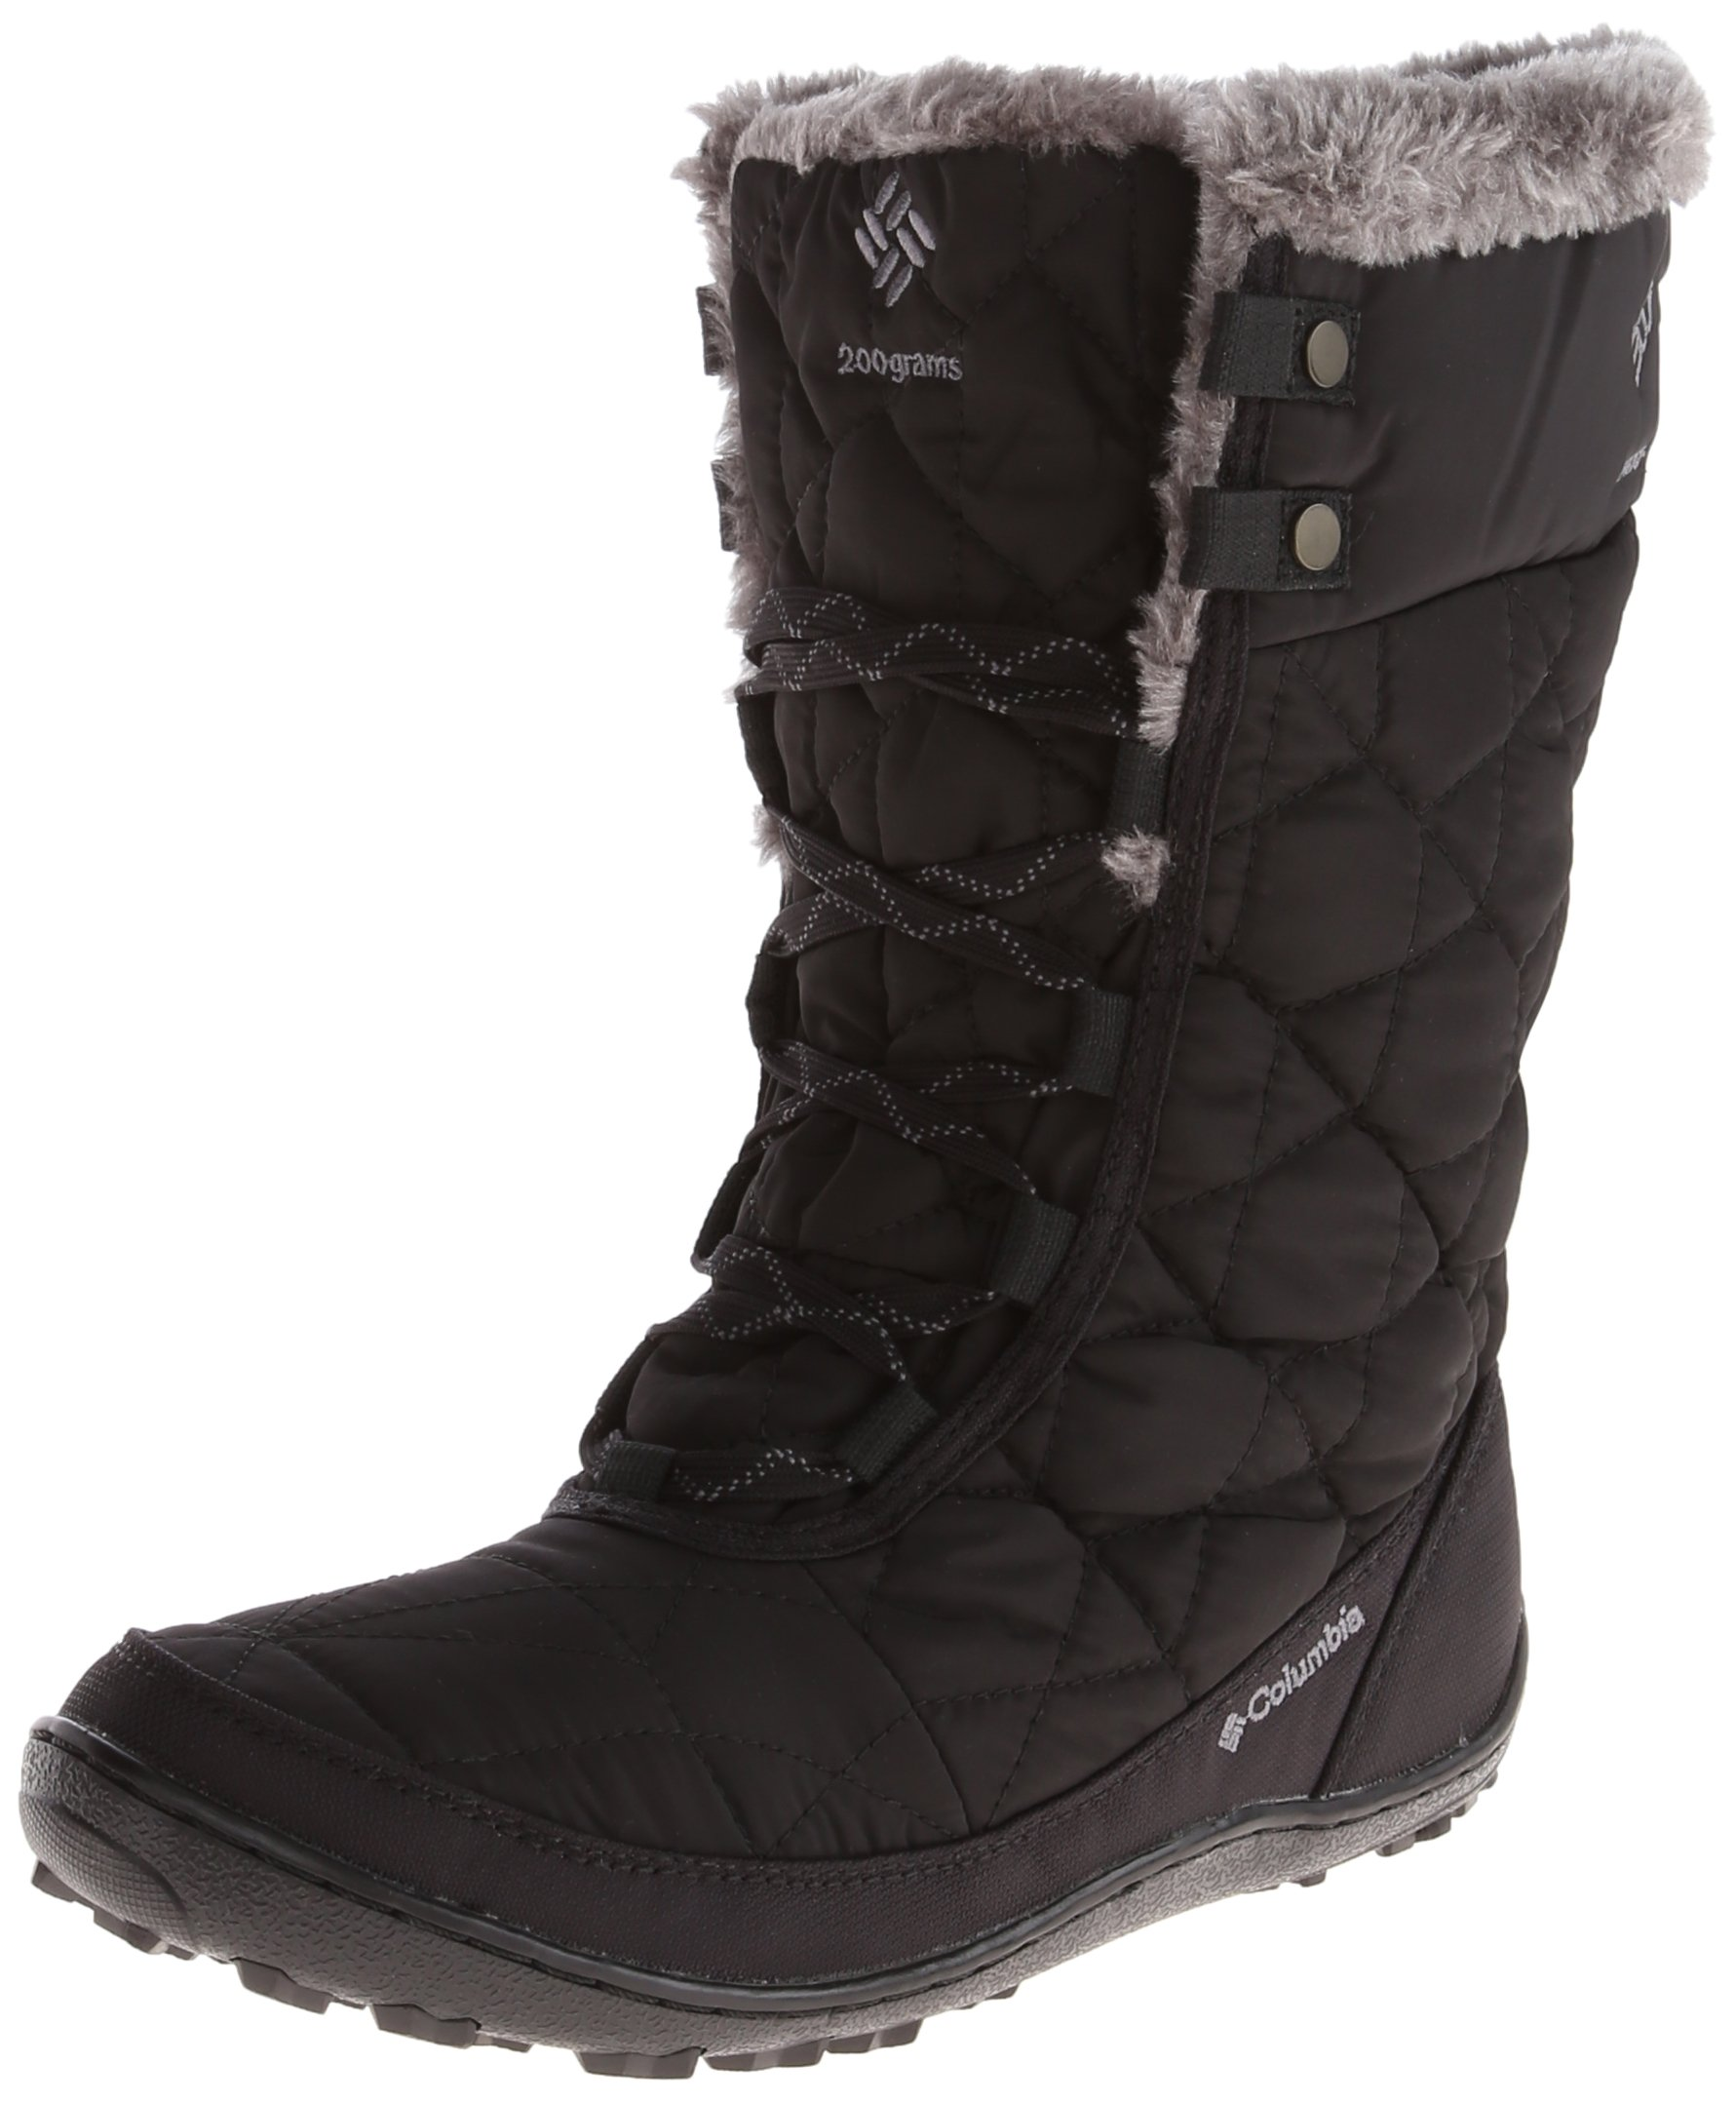 Columbia Women's Minx Mid Ii Omni-heat Snow Boot, Black, Charcoal, 11 B US